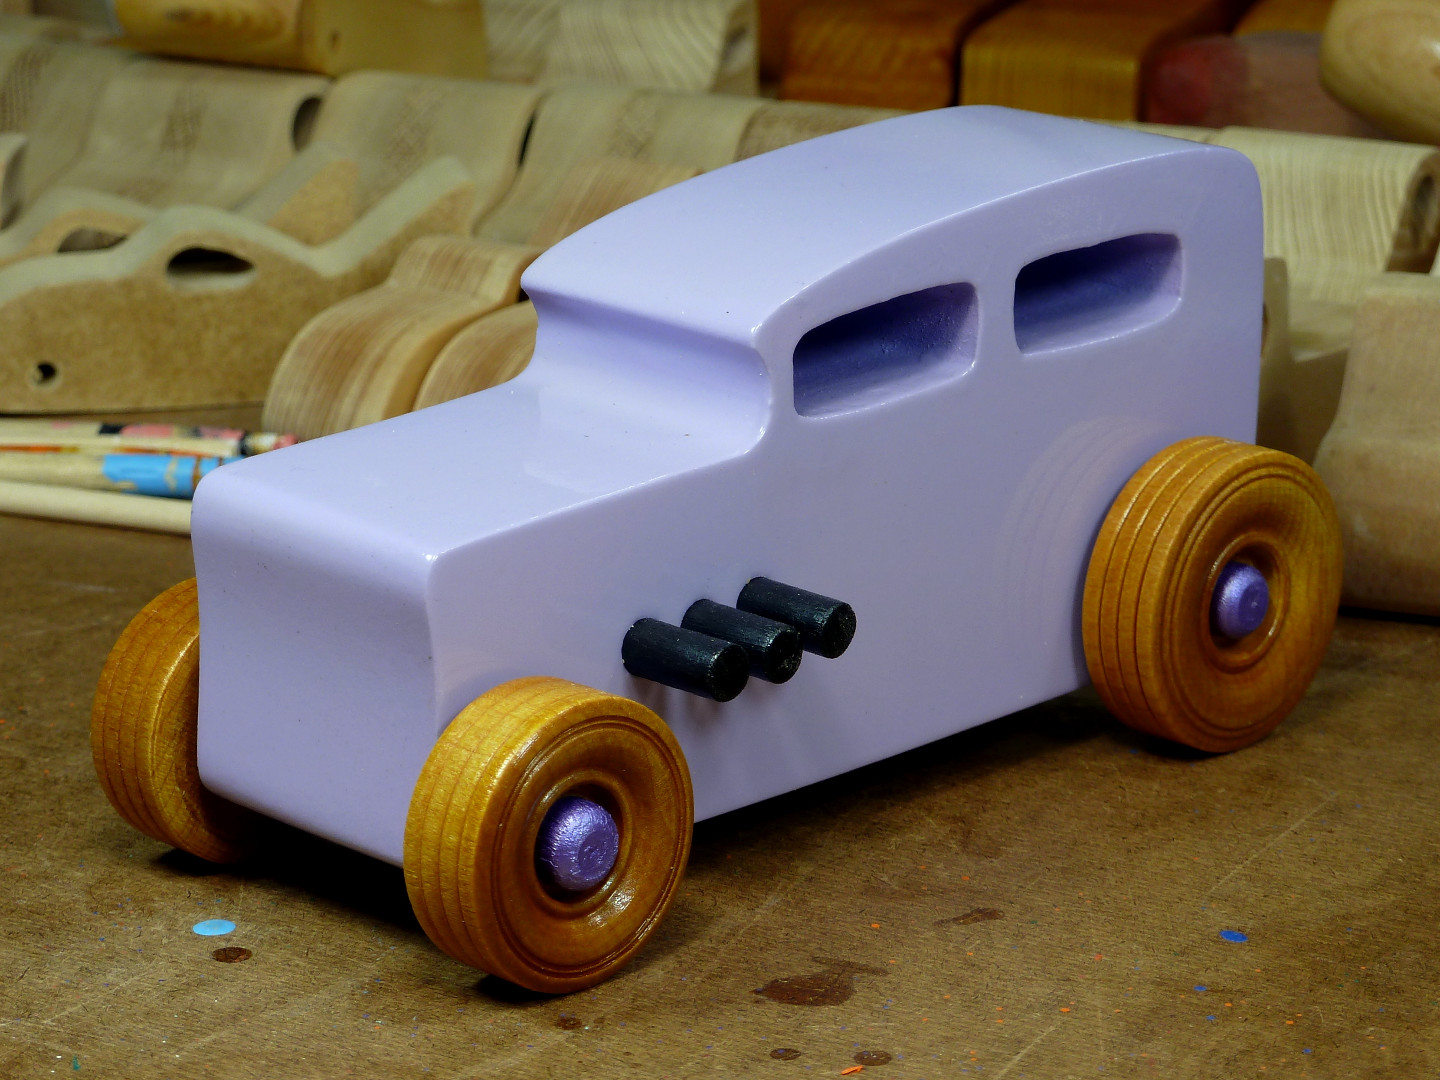 20170522-185746 Wooden Toy Car - Hot Rod Freaky Ford - 32 Sedan - MDF - Lavender - Amber Shellac - Metallic Purple 01.jpg